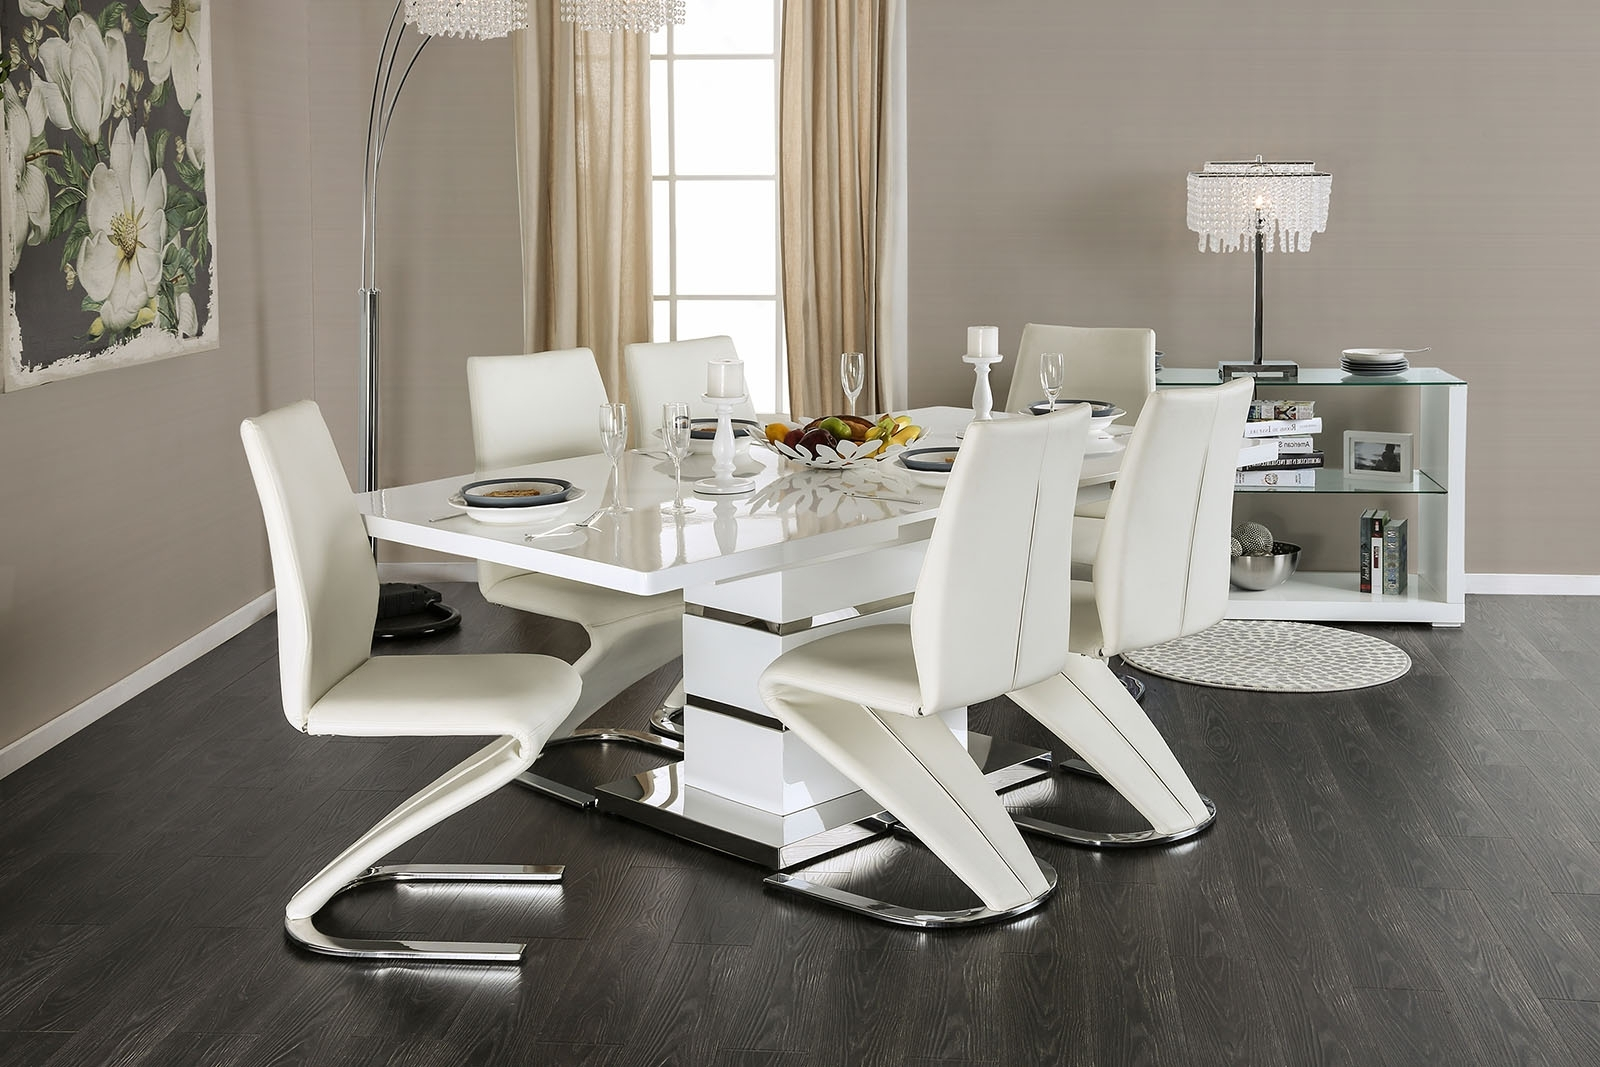 Fashionable Midvale Contemporary Style White High Gloss Lacquer Finish & Chrome Regarding Gloss Dining Set (View 8 of 25)